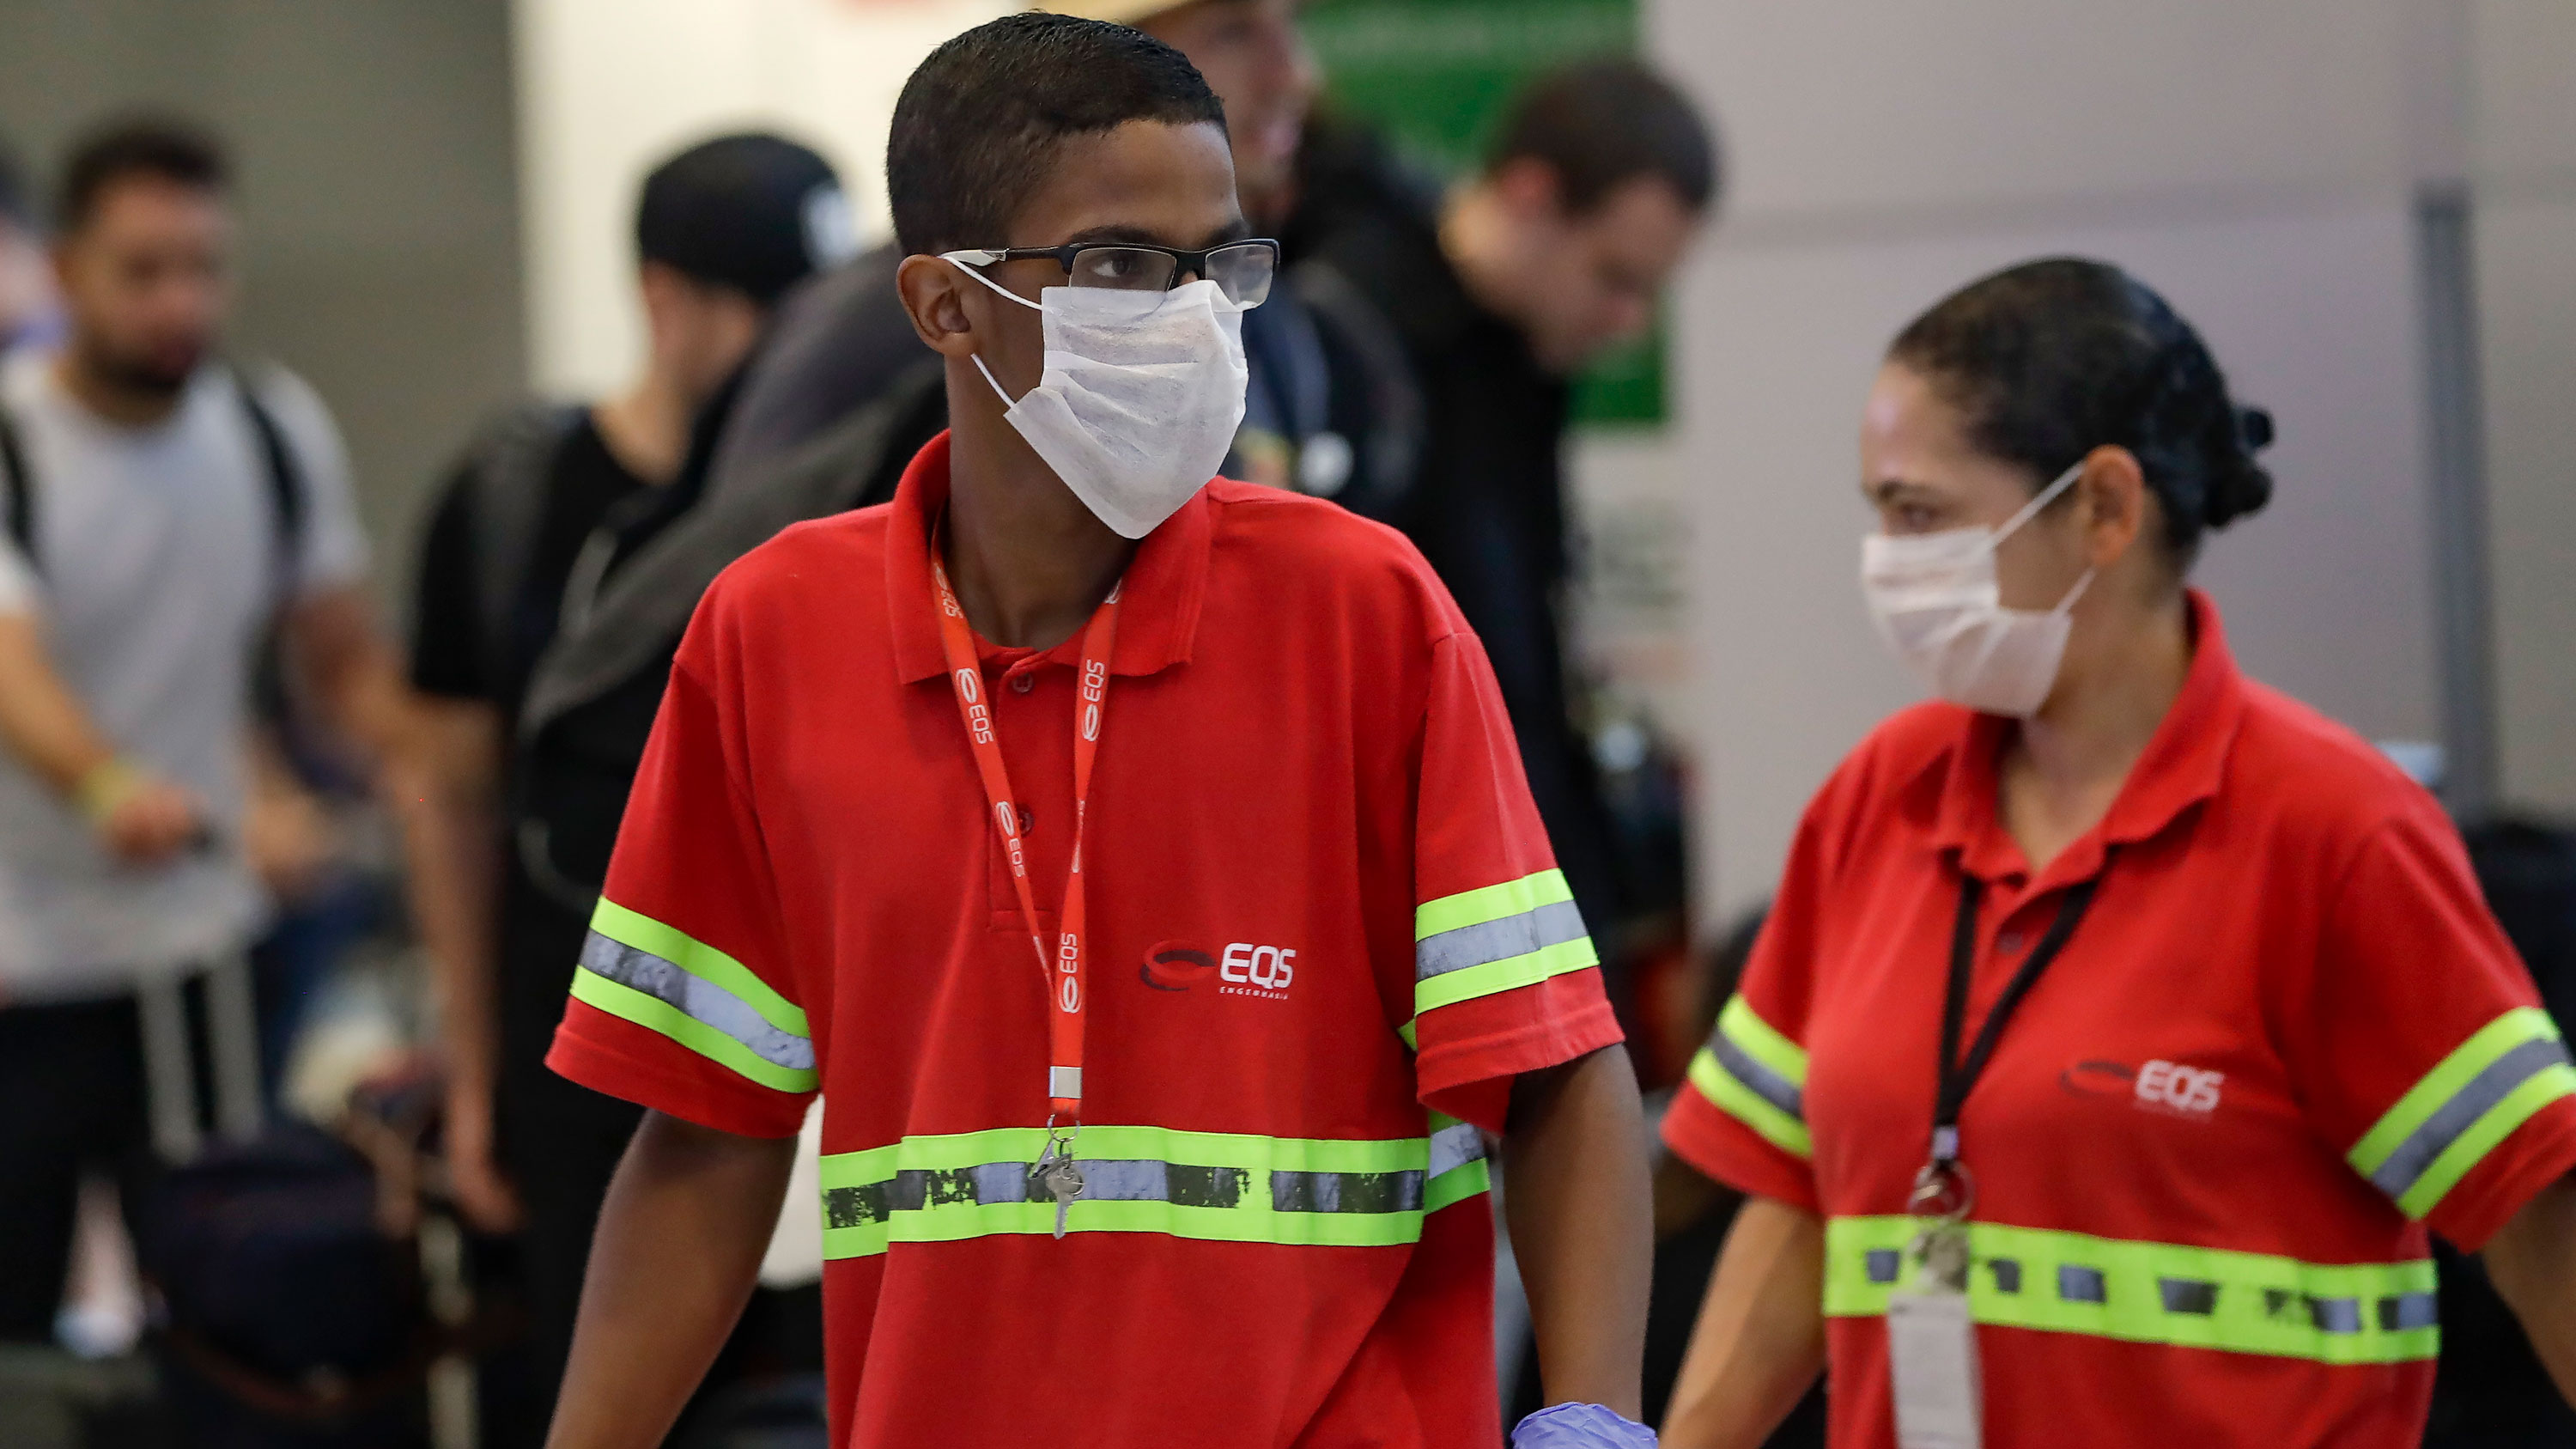 Airport employees wear masks as they work at the Sao Paulo International Airport in Sao Paulo, Brazil, on Wednesday, February 26.